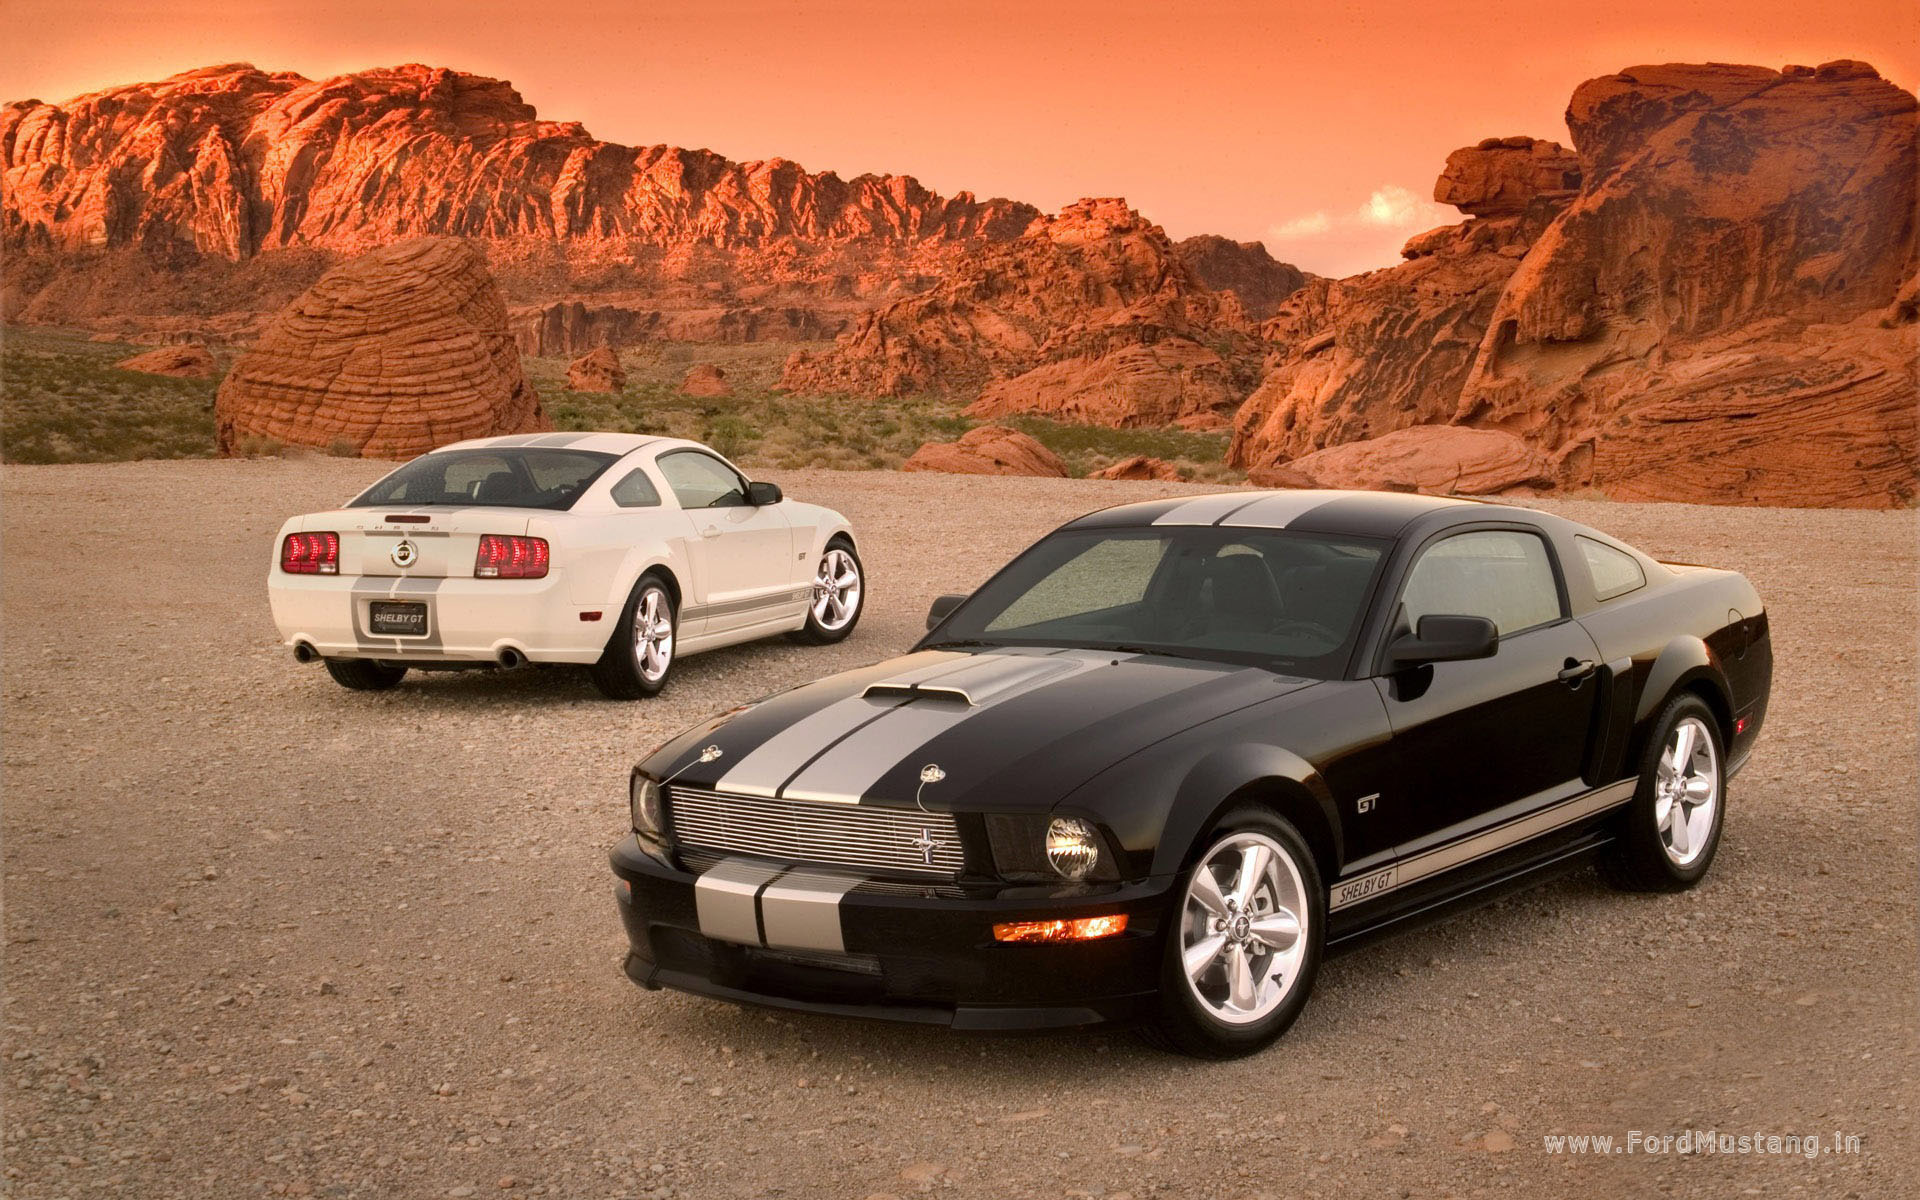 2007 ford mustang ford mustang bullitt ford mustang. Black Bedroom Furniture Sets. Home Design Ideas